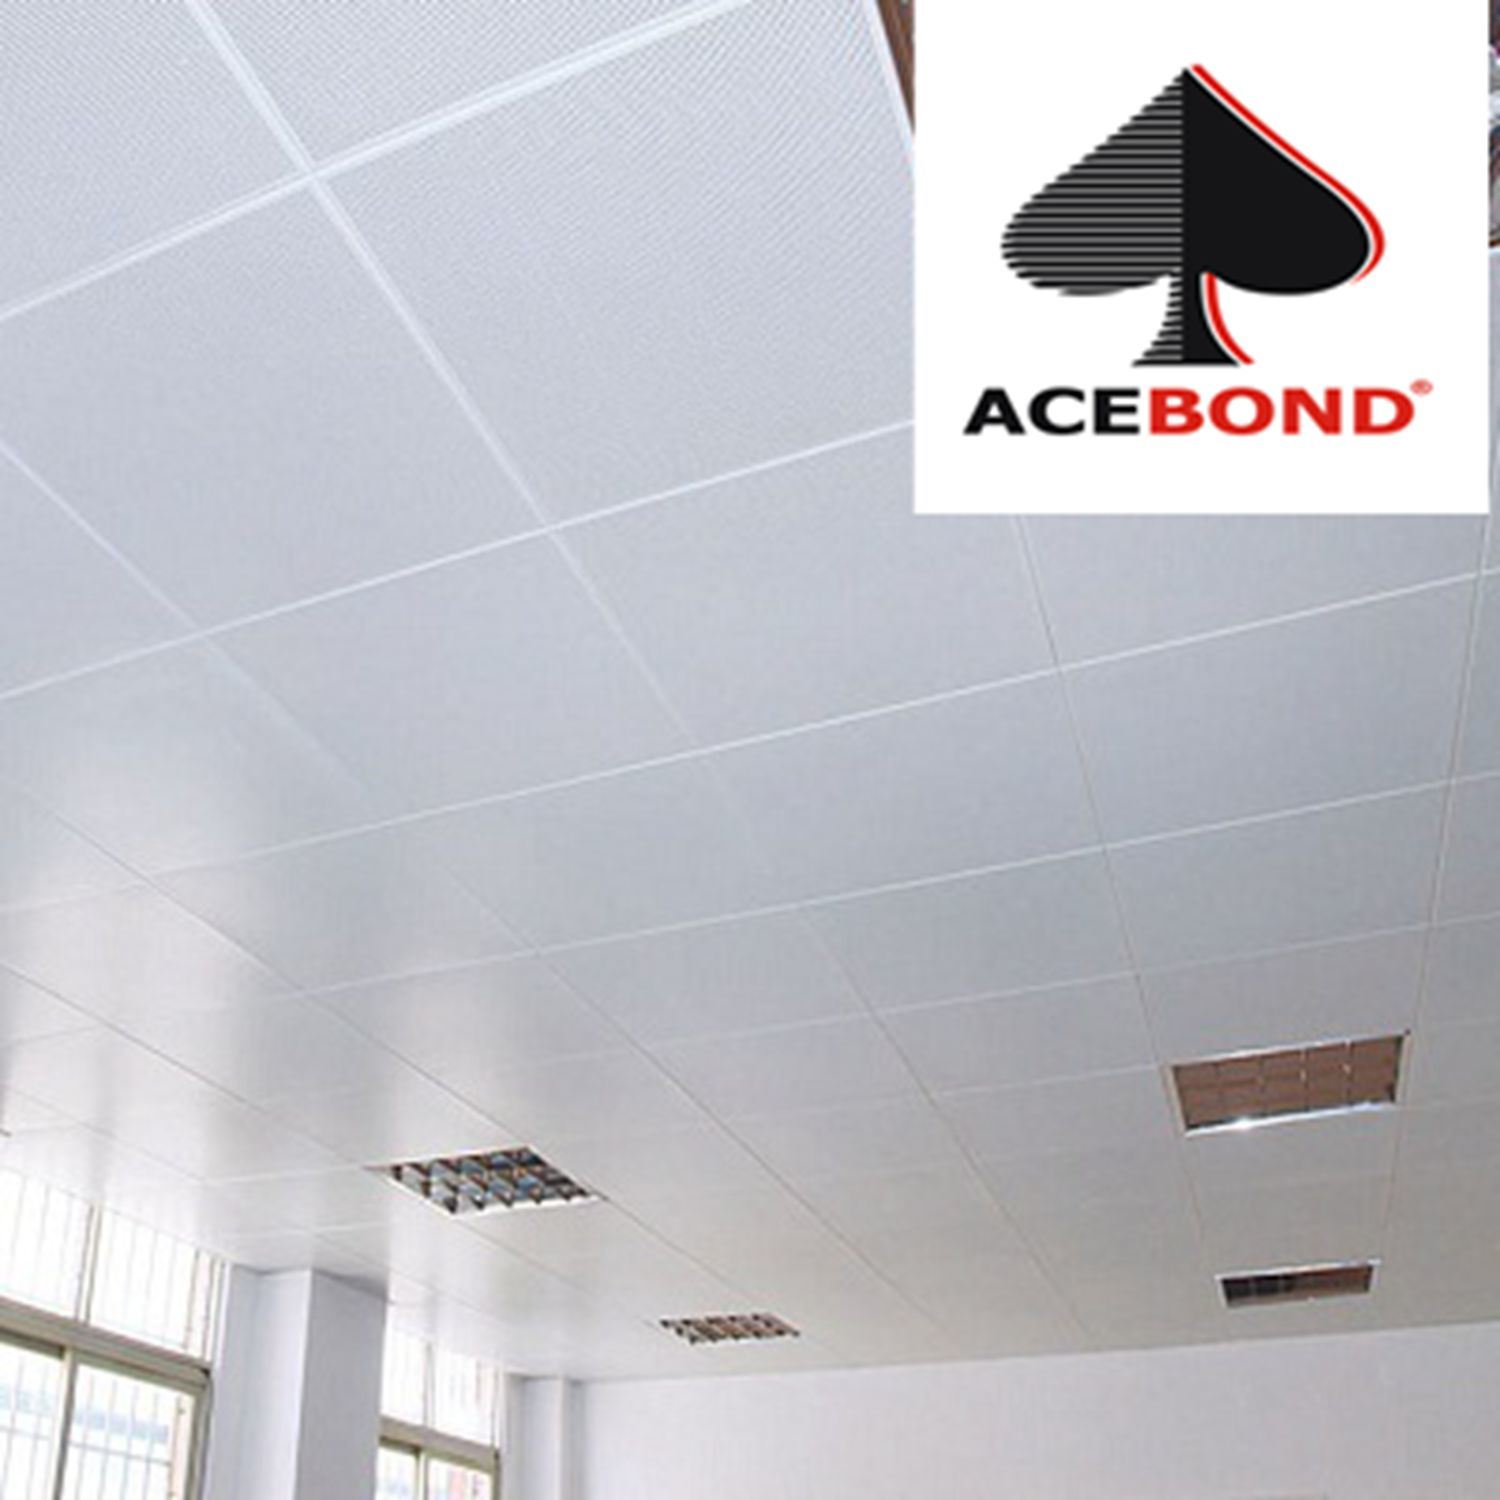 Gridstone ceiling tile msds pranksenders gyprex ceiling tiles choice image tile flooring design ideas dailygadgetfo Image collections